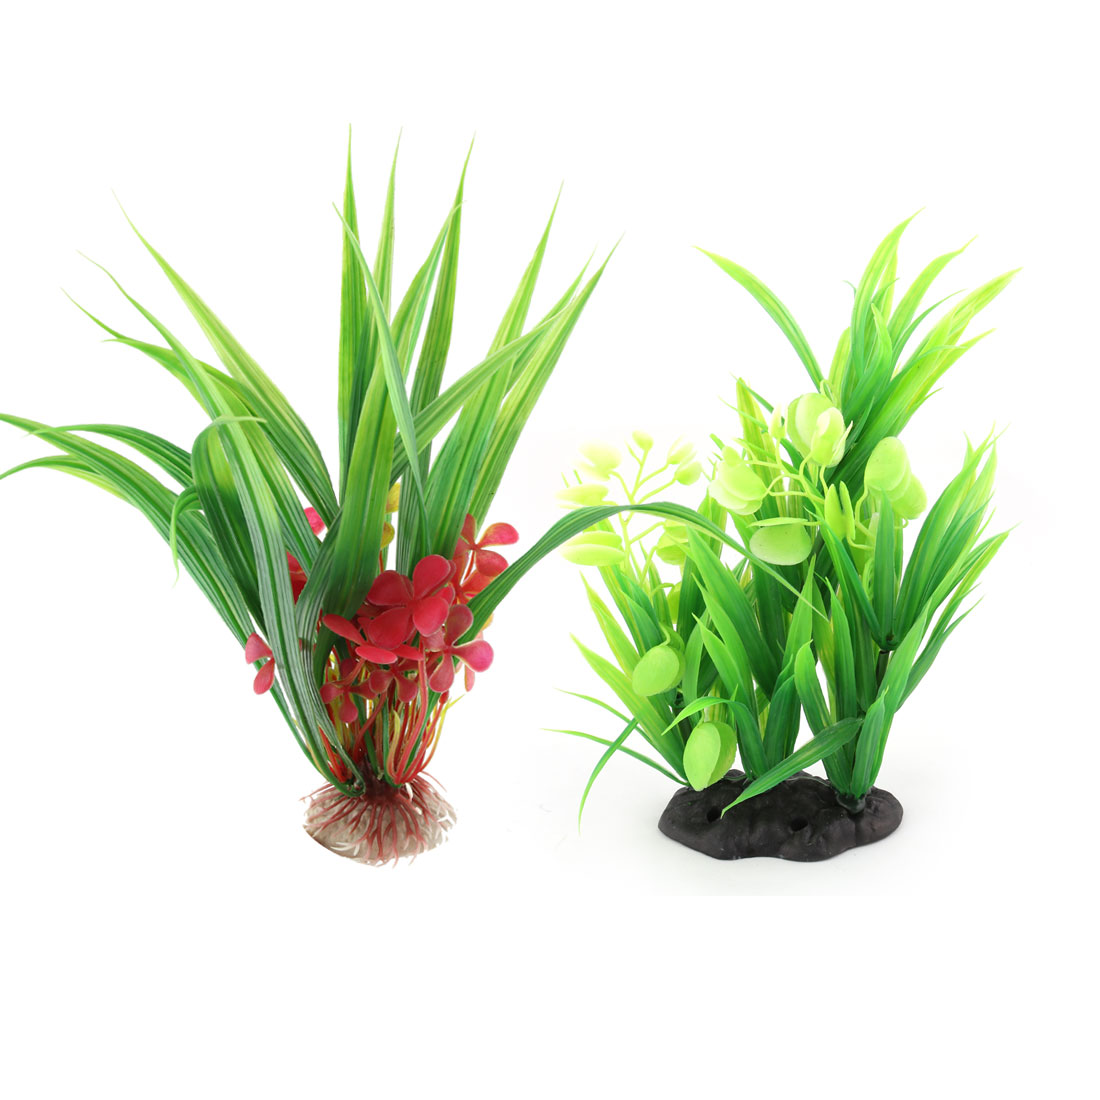 Aquarium Ceramic Base Plastic Manmade Landscaping Underwater Water Grass Plant Decor 2 in 1